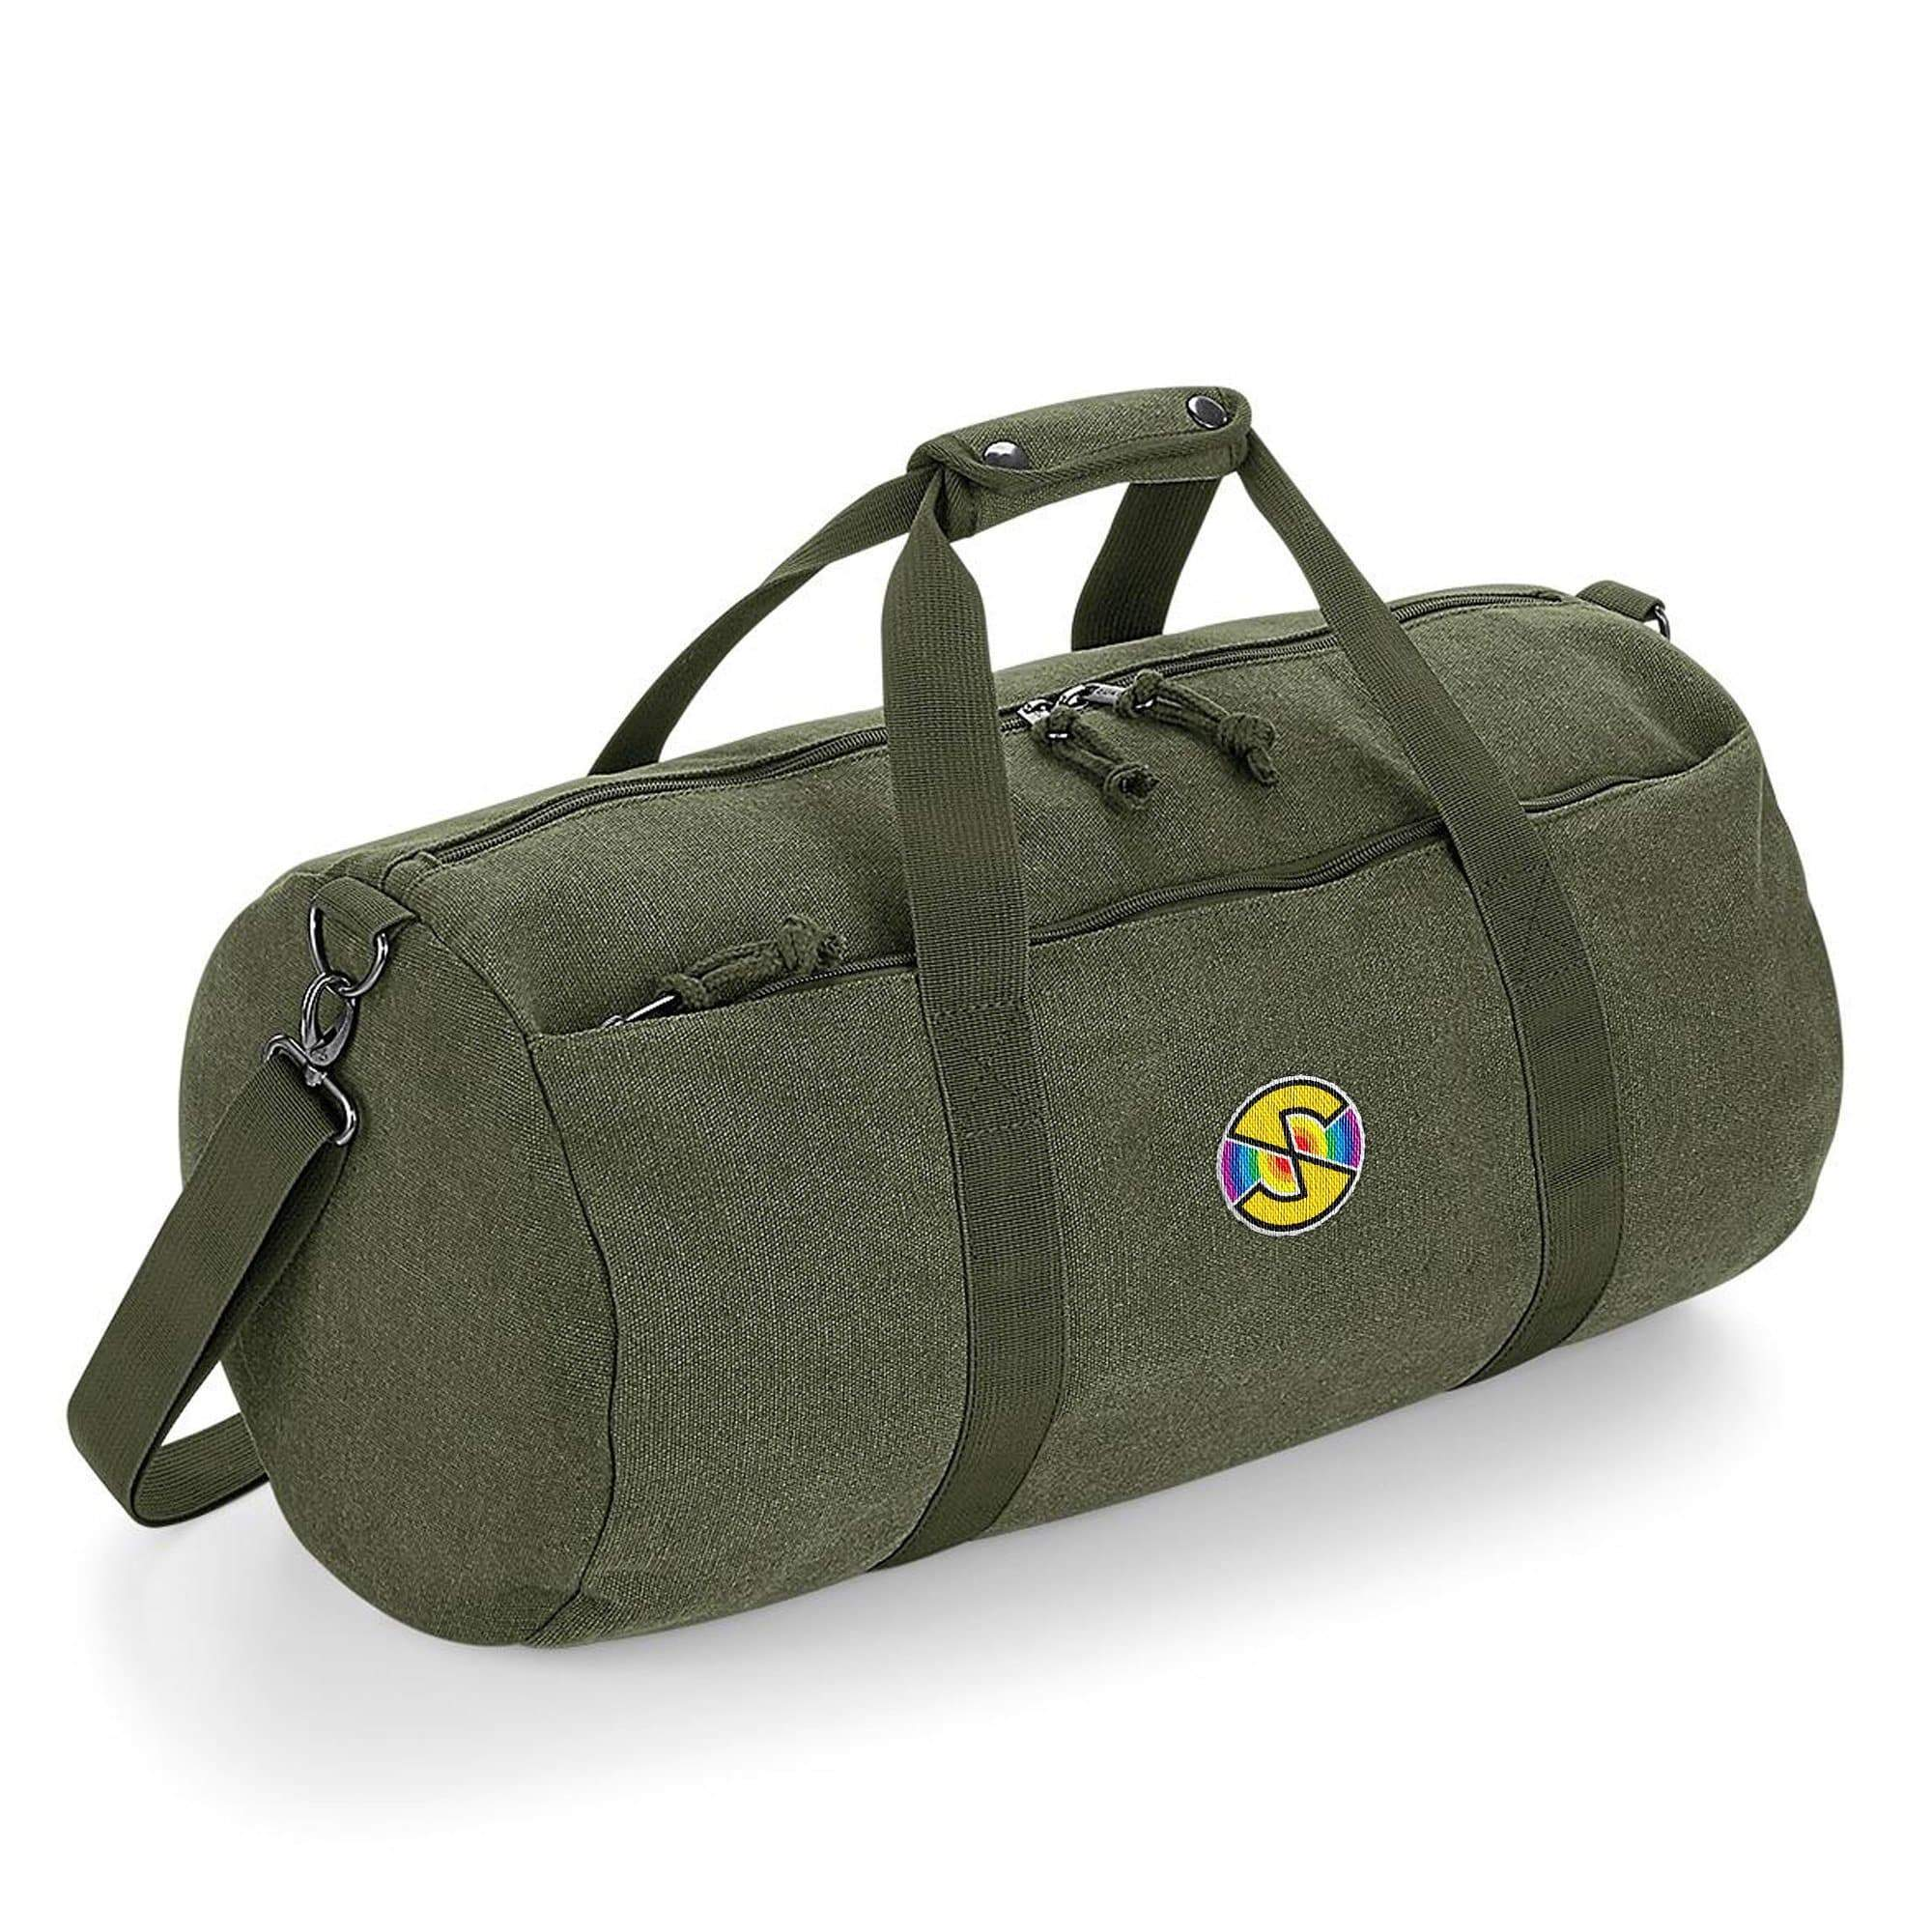 Captain Scarlet Spectrum Barrel Bag [Official & Exclusive] - The Gerry Anderson Store